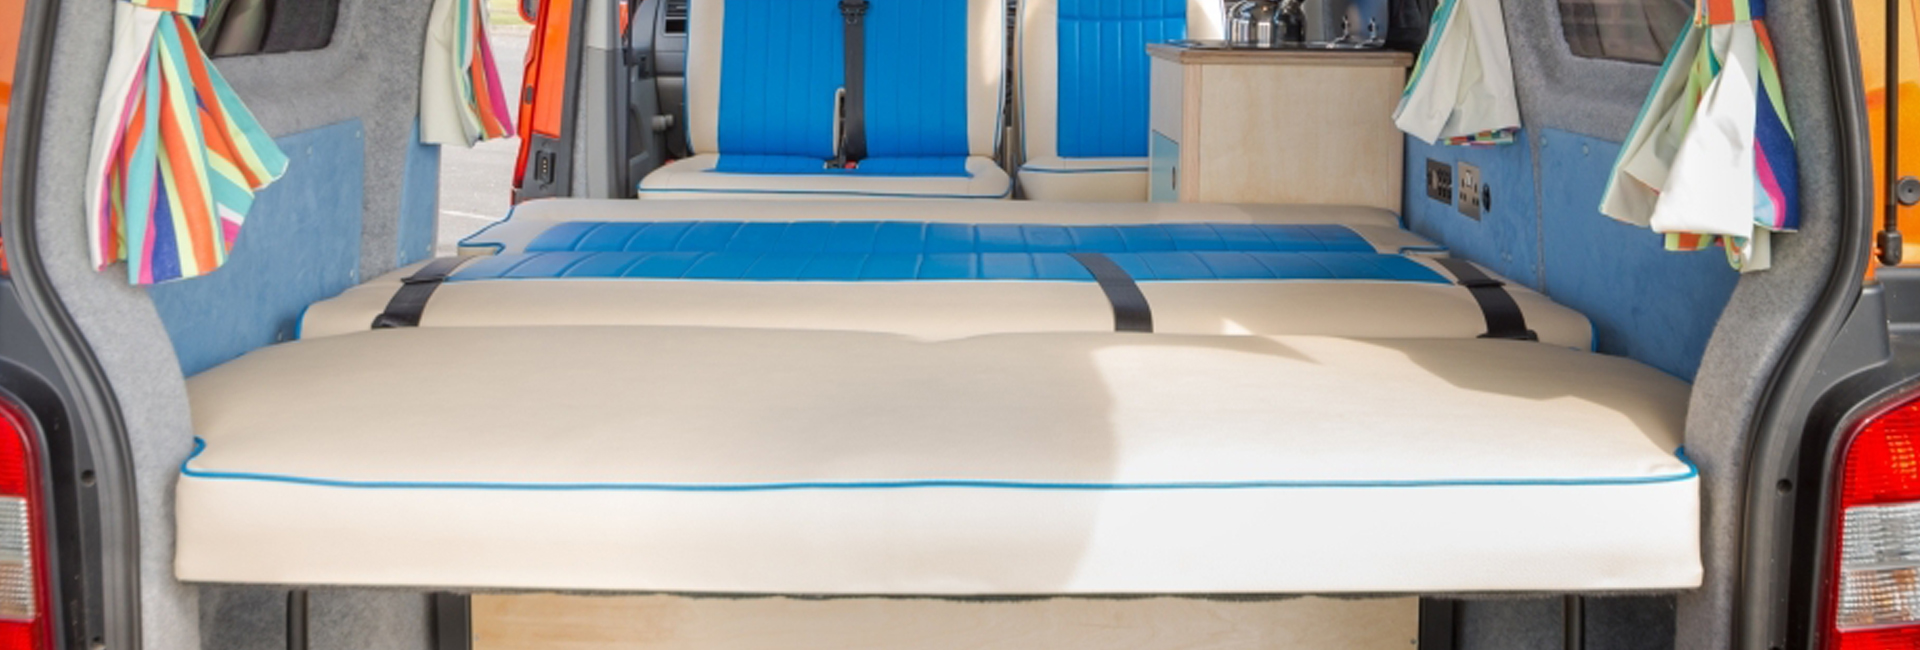 rock and roll white and blue bed campervan down flat